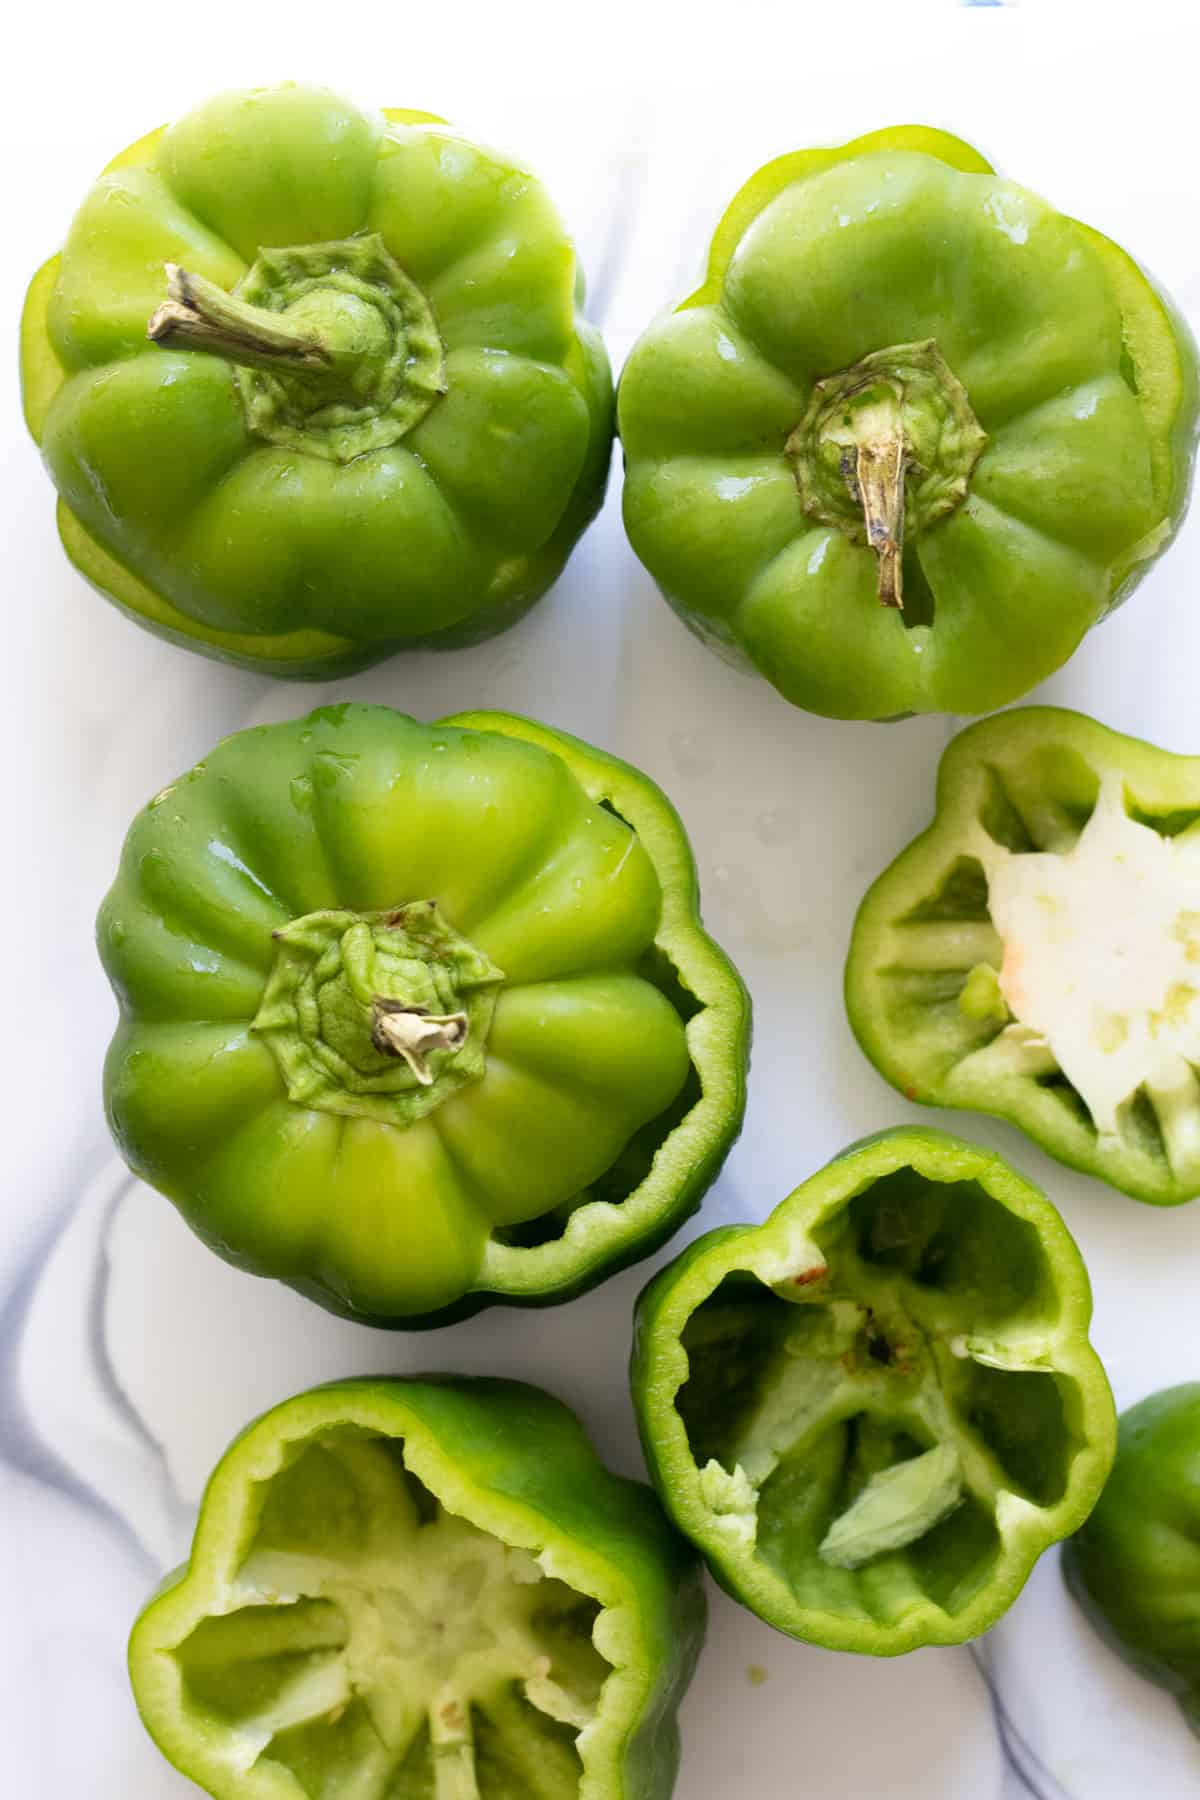 green bell peppers with seeds and ribs removed